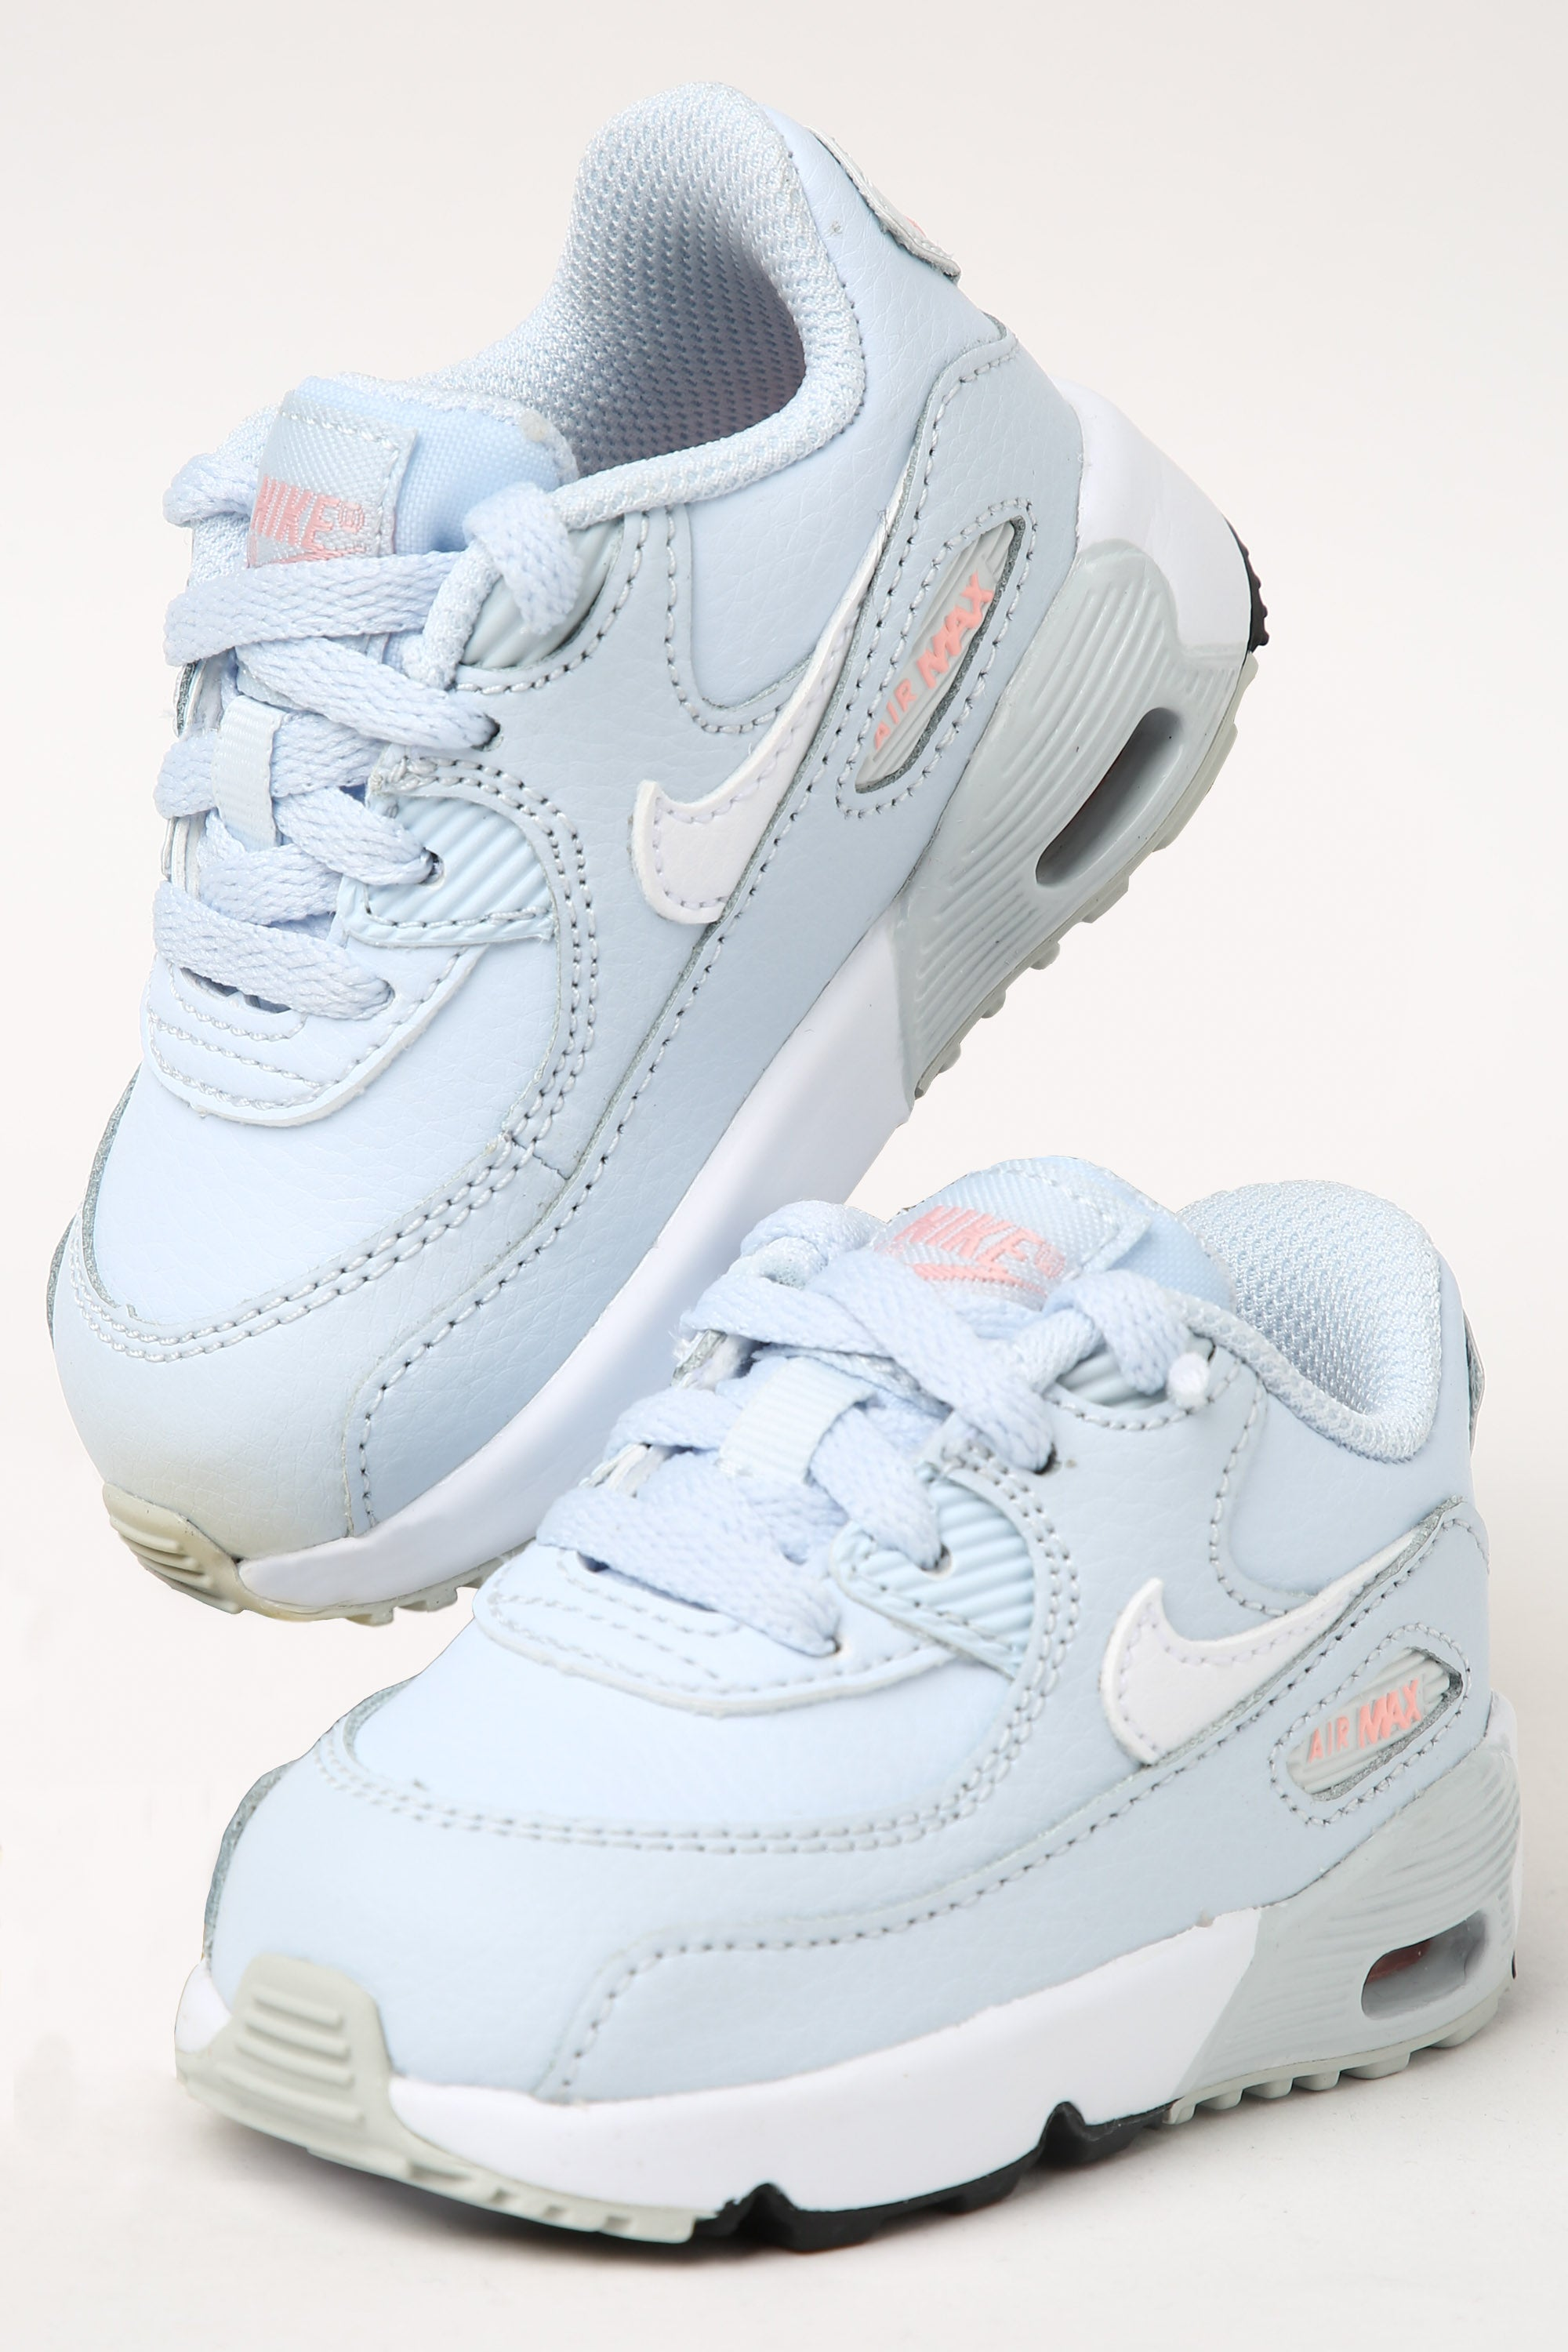 Nike Air Max 90 Ltr Toddlers Style : 833379 013